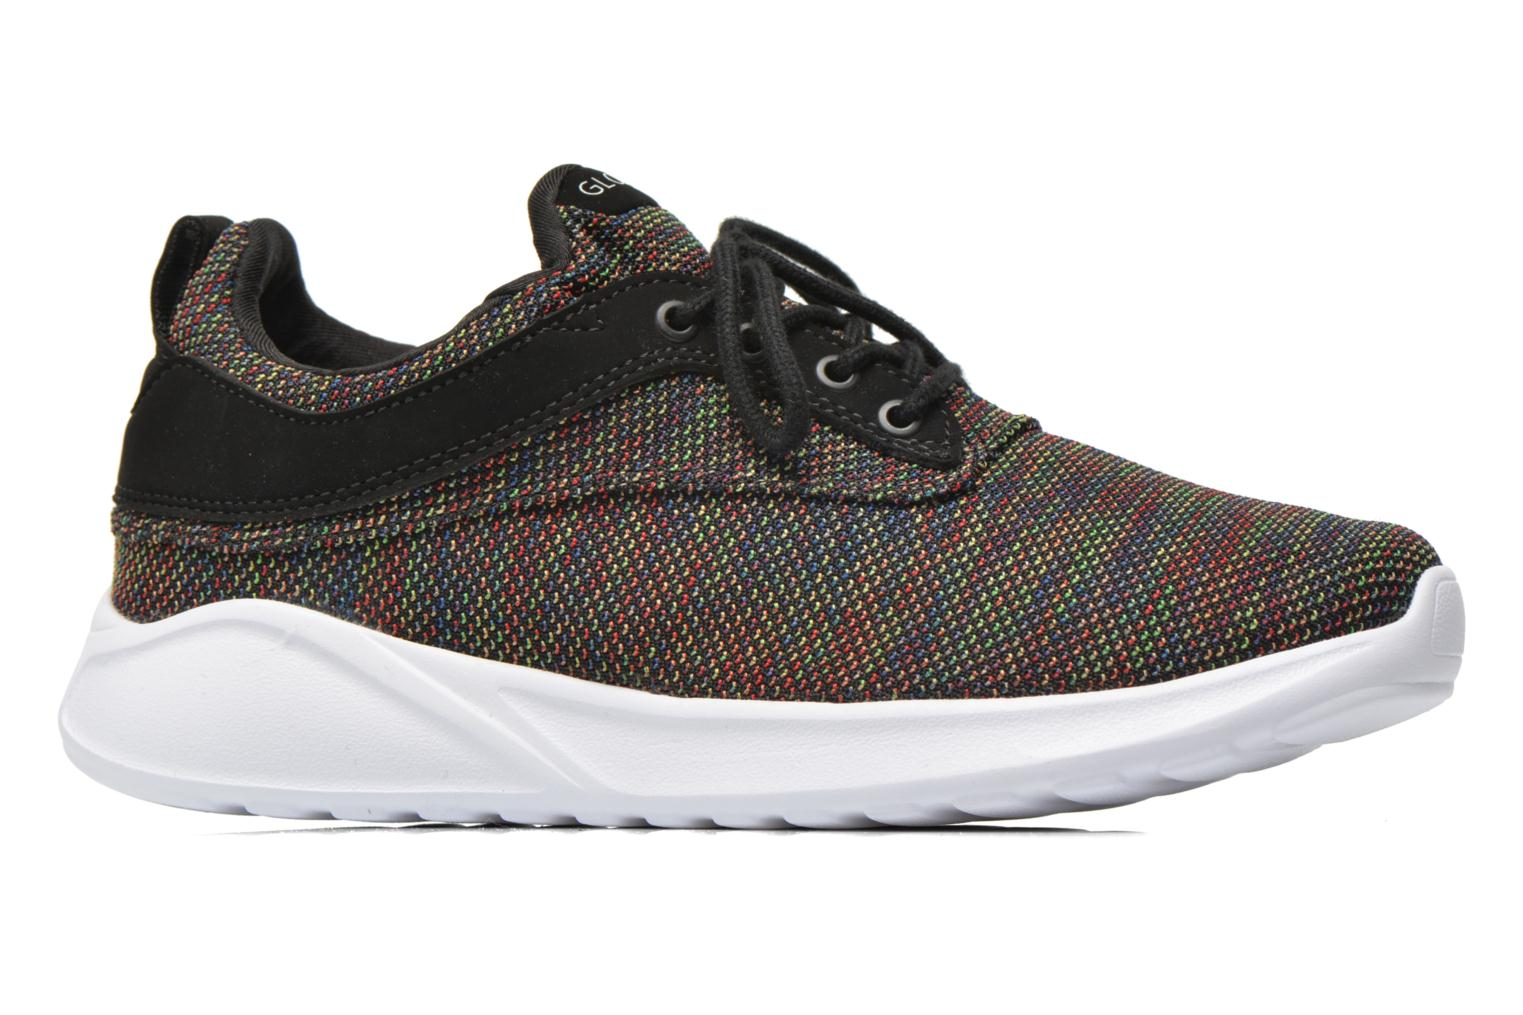 Roam Lyte Multi/Black